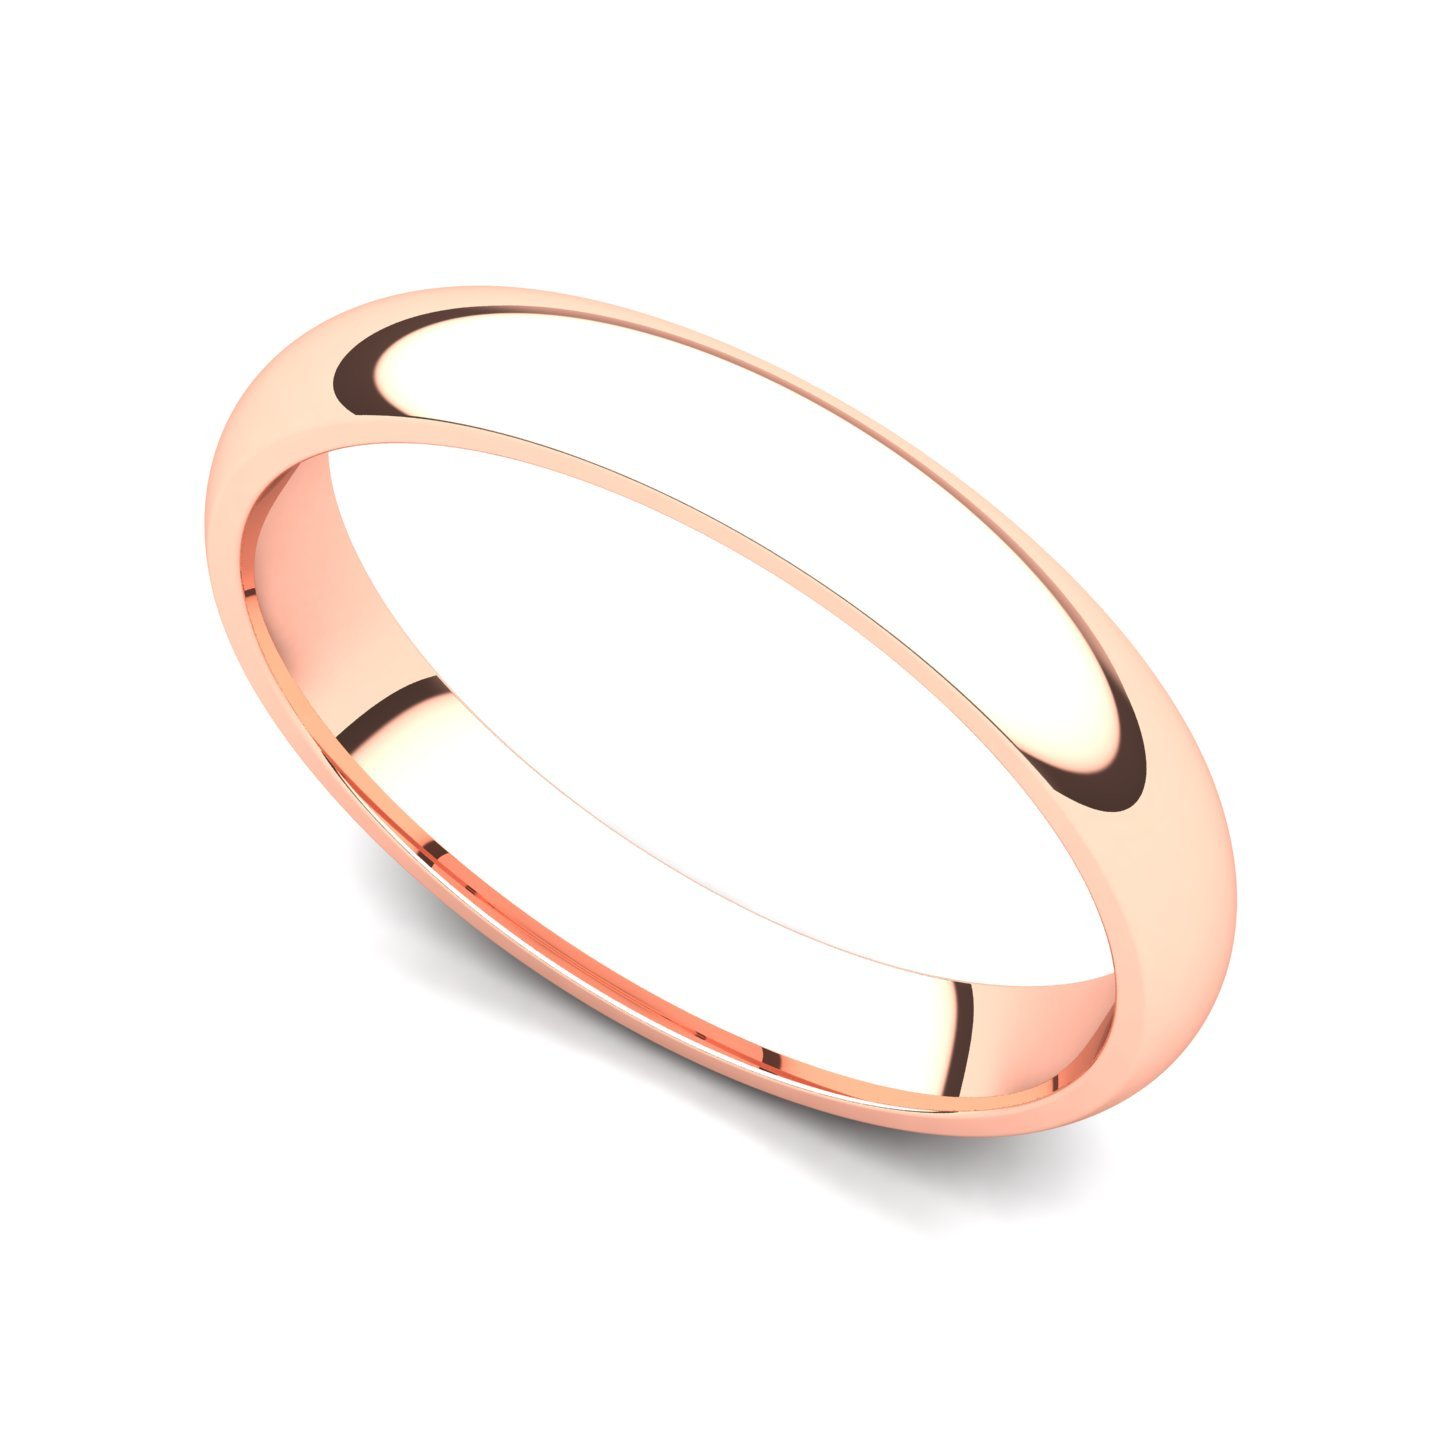 18k Rose Gold 3mm Classic Plain Comfort Fit Wedding Band Ring, 7 by Juno Jewelry